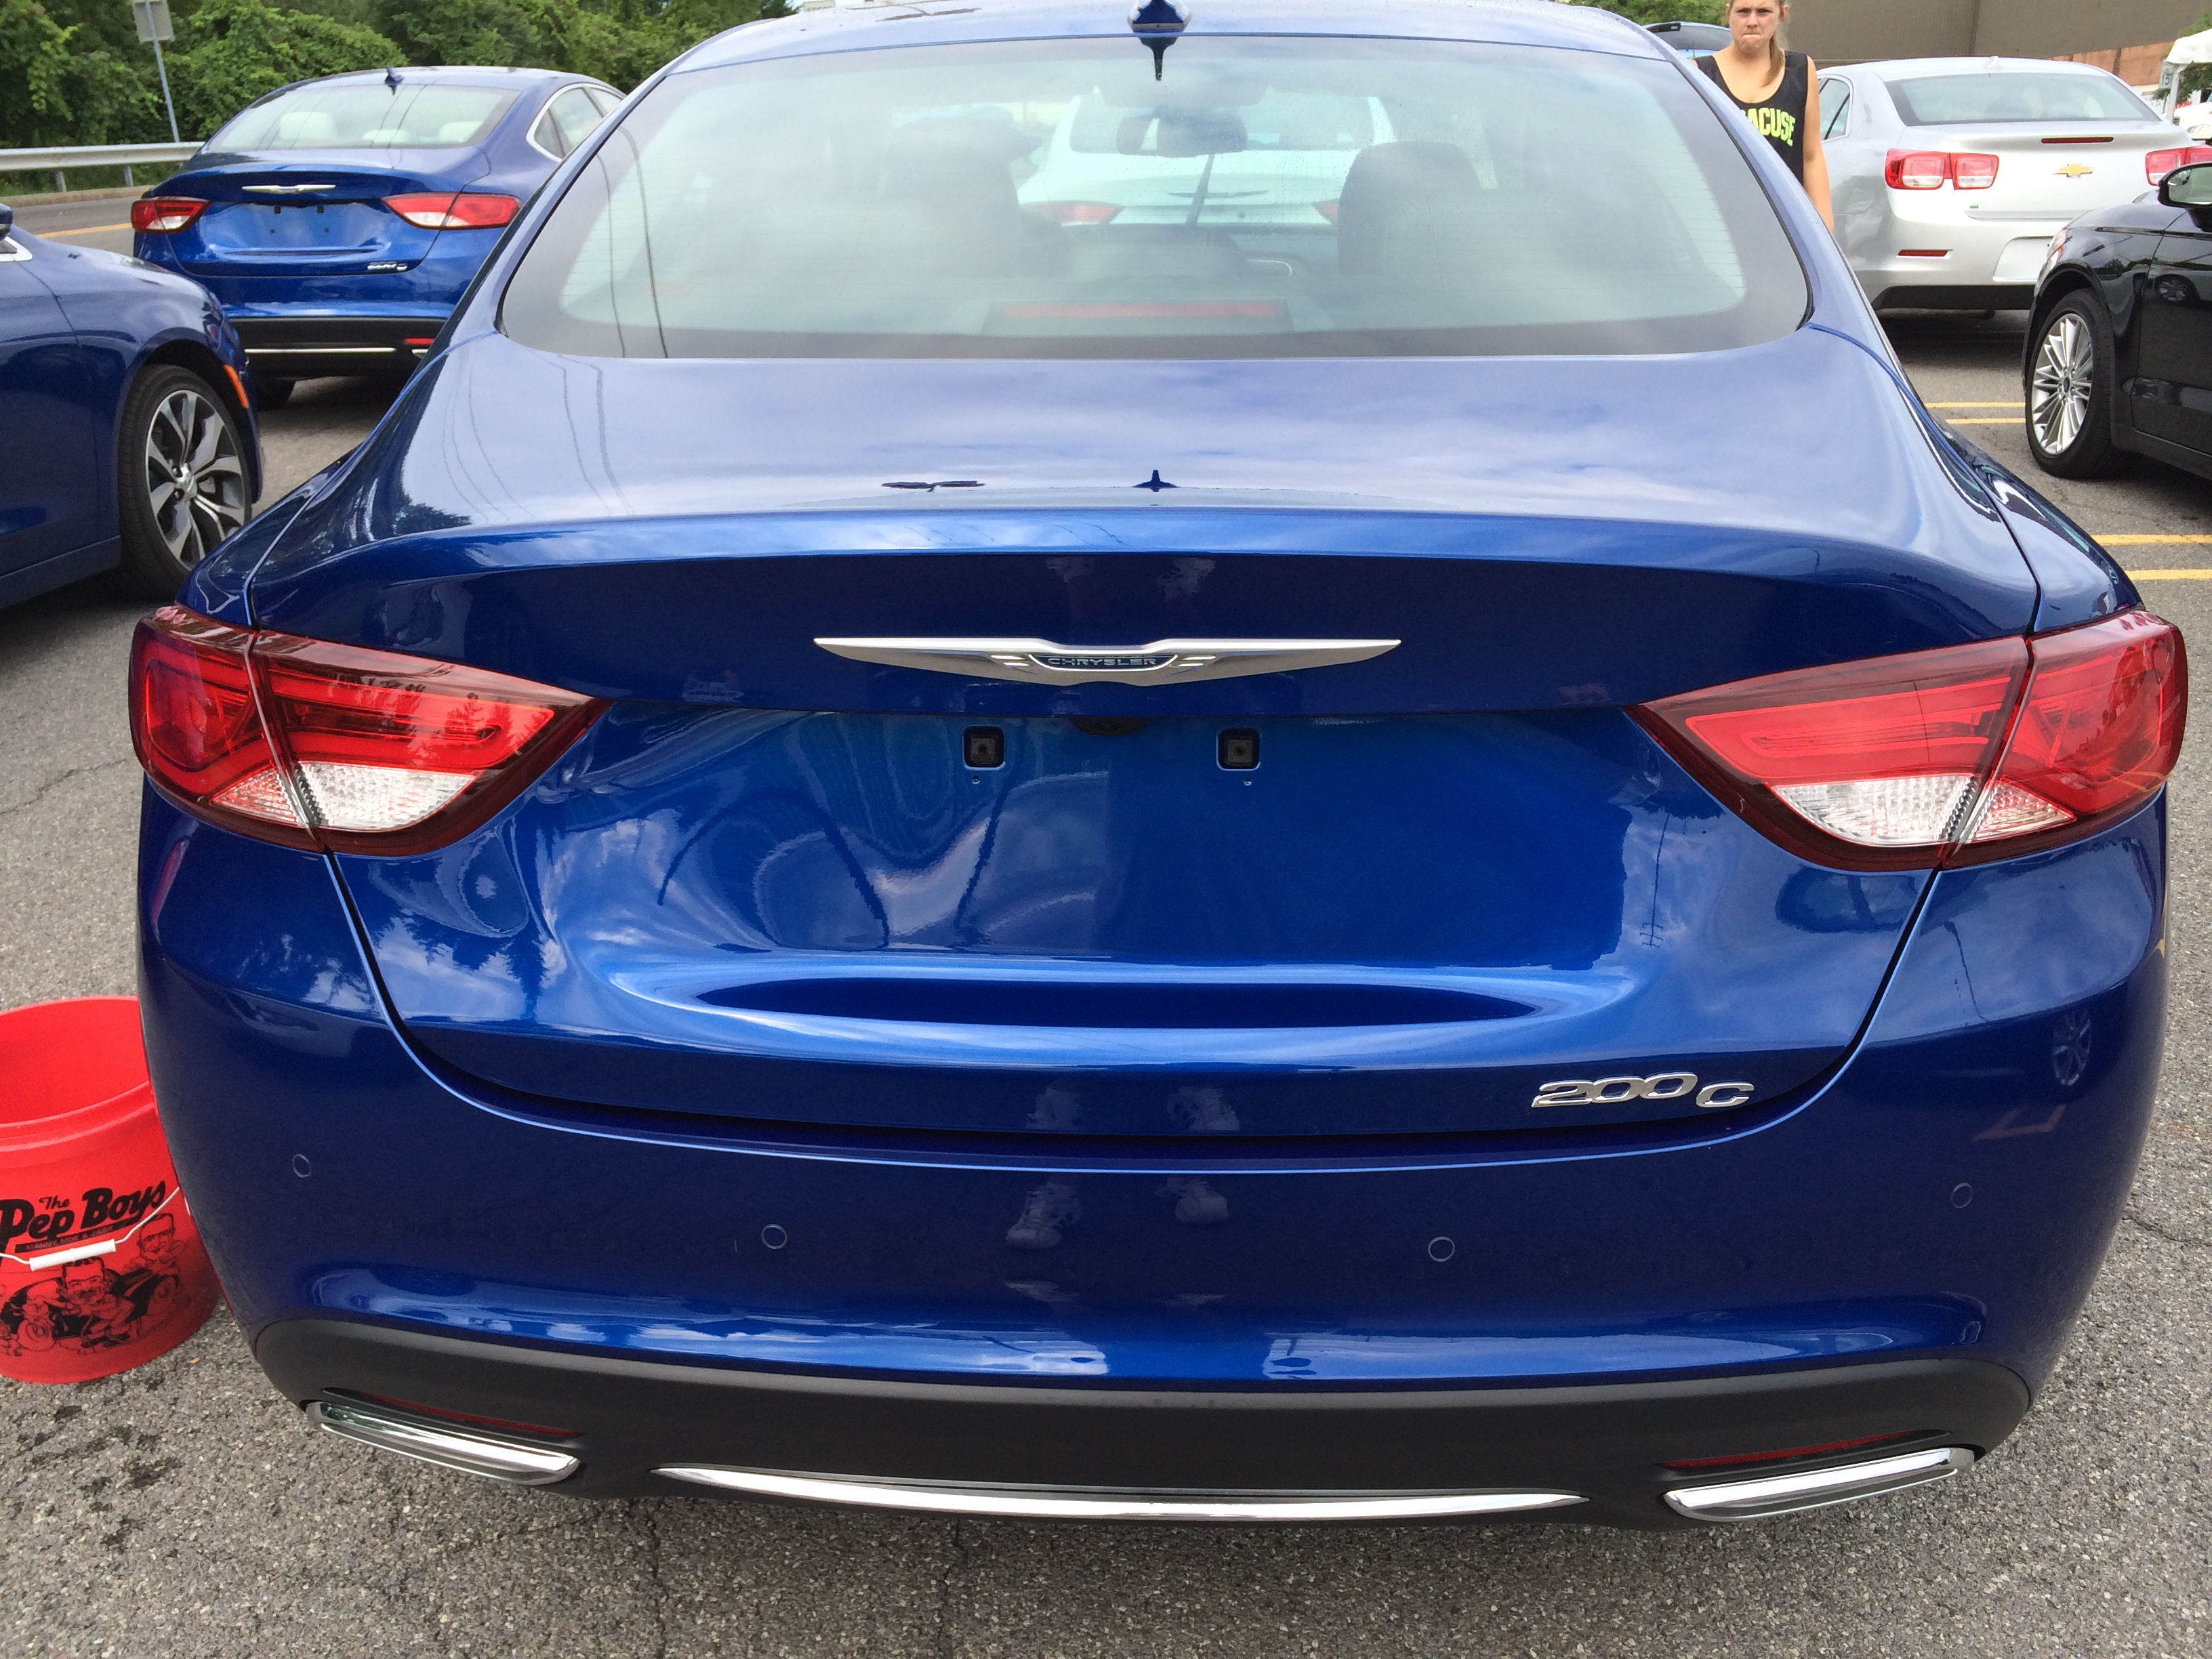 2014 Chrysler 200 Ride & Drive Event